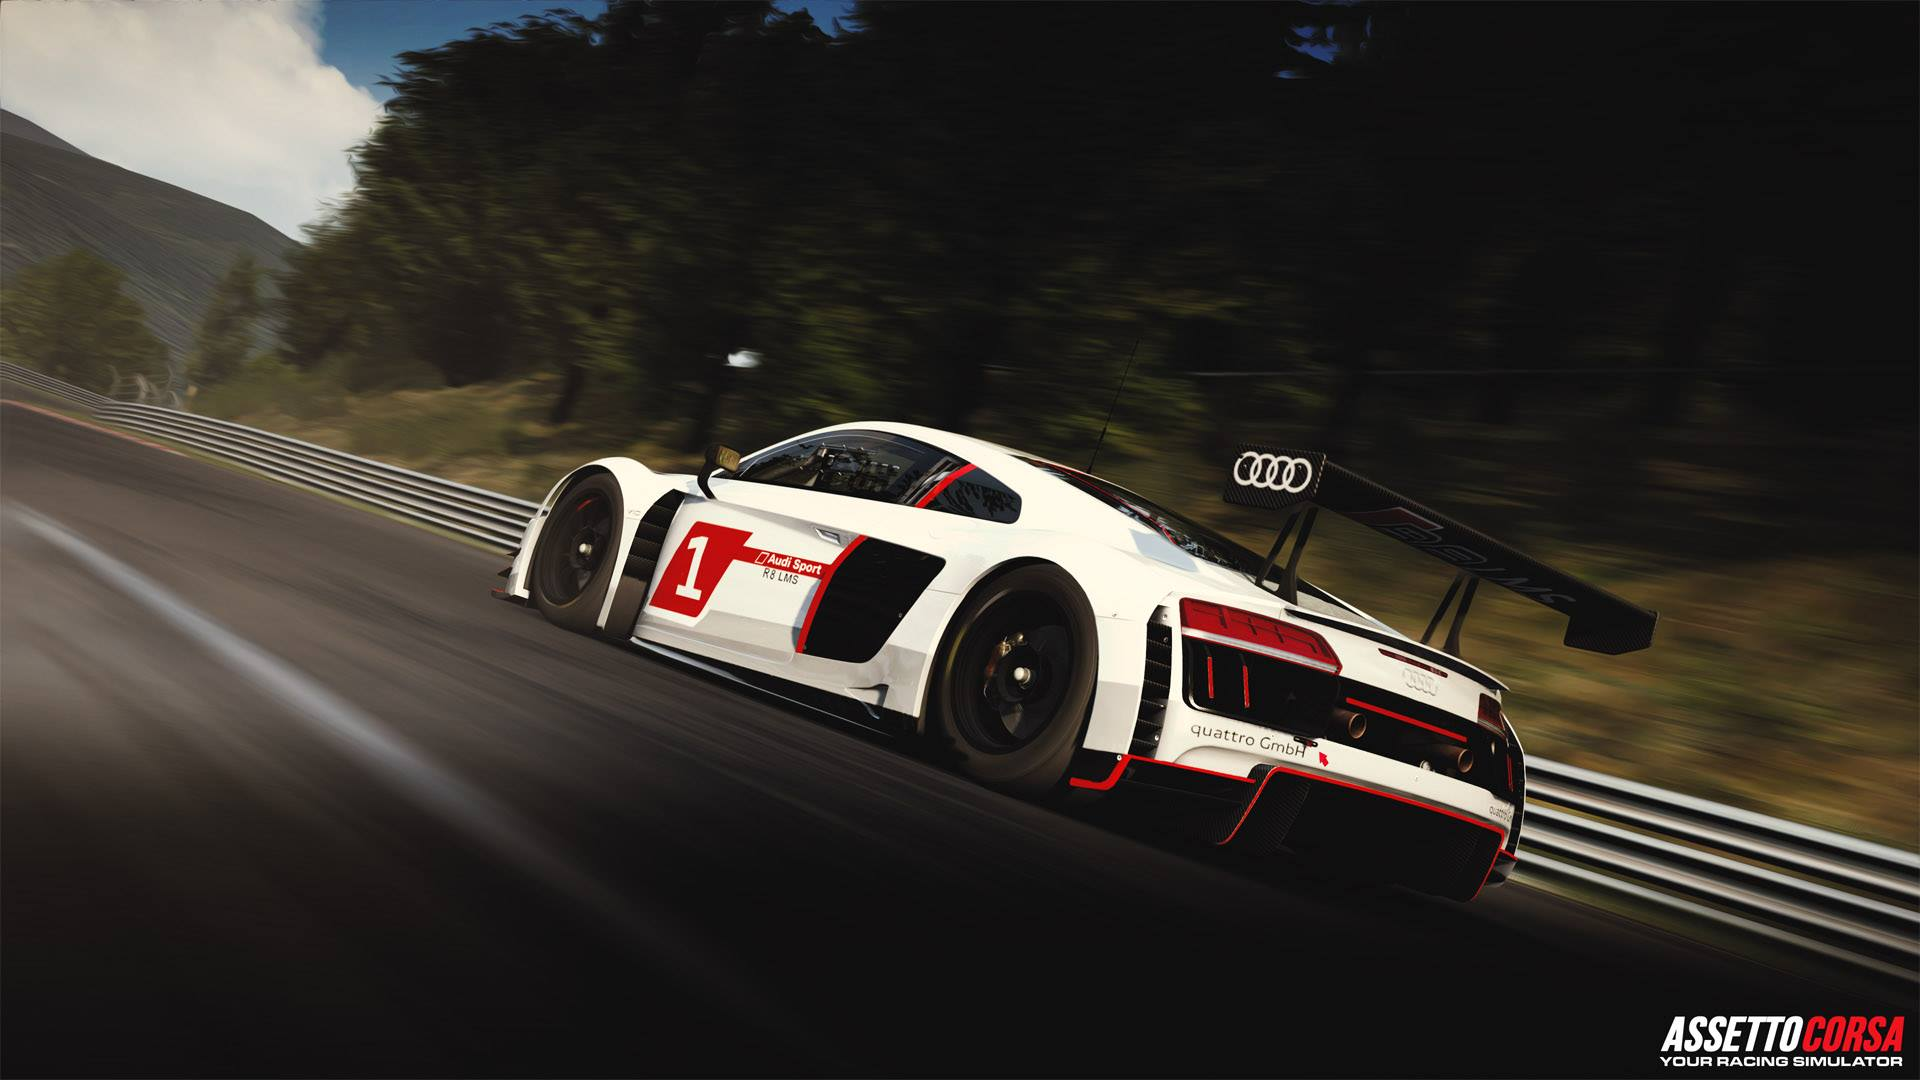 Assetto Corsa Ready To Race DLC Audi R8 LMS 2016